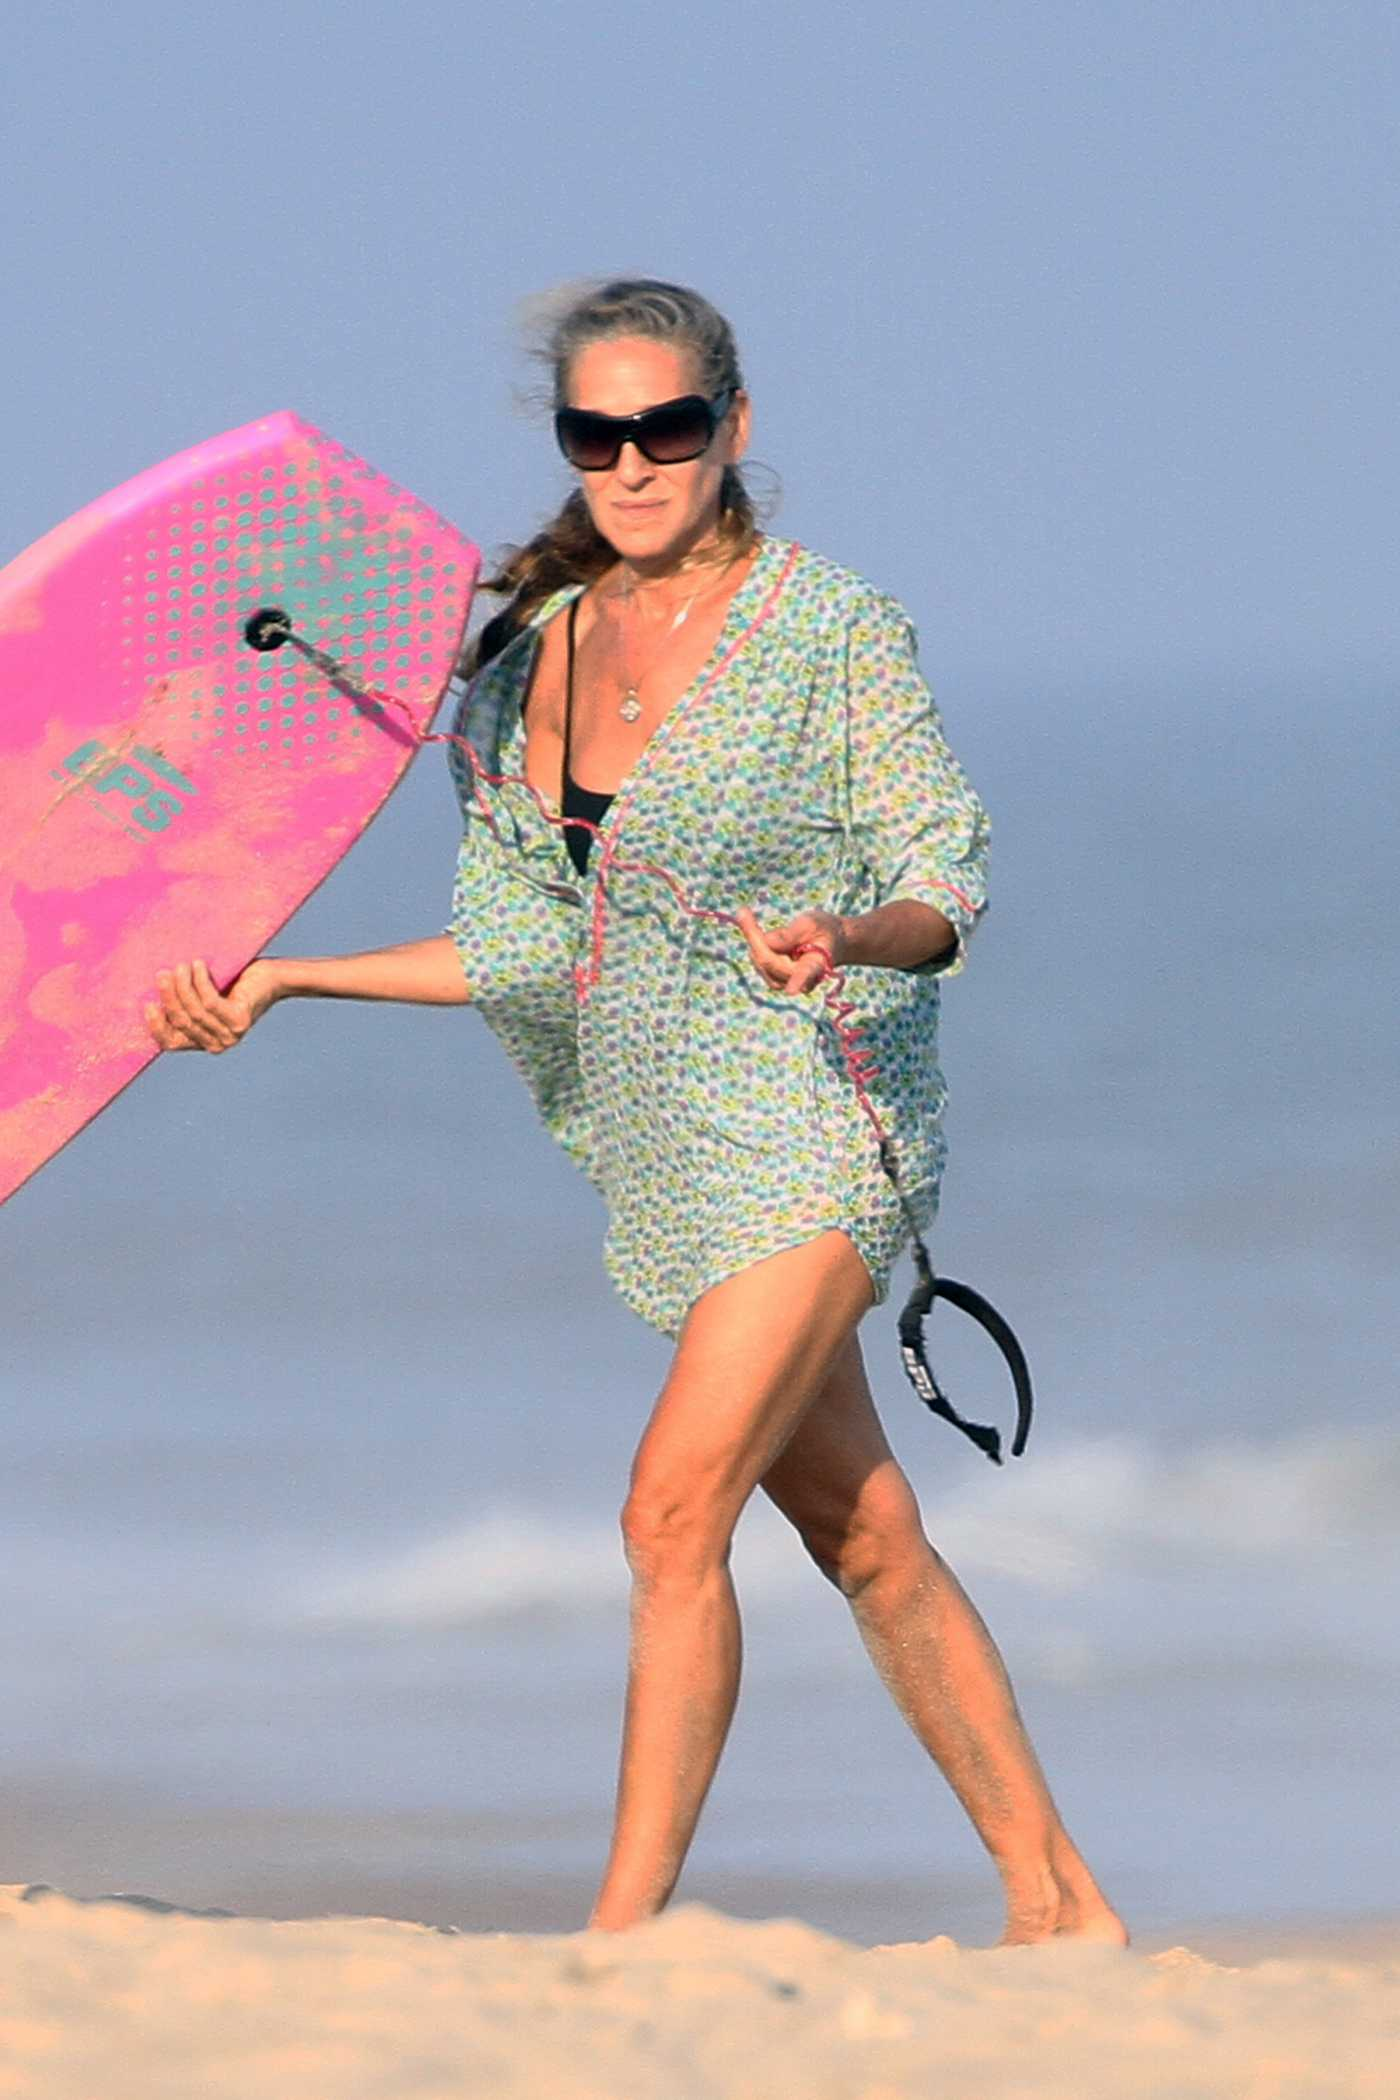 Sarah Jessica Parker in a Black Bikini Spends Quality Time with Her Husband on the Beach in the Hamptons, New York 08/23/2020